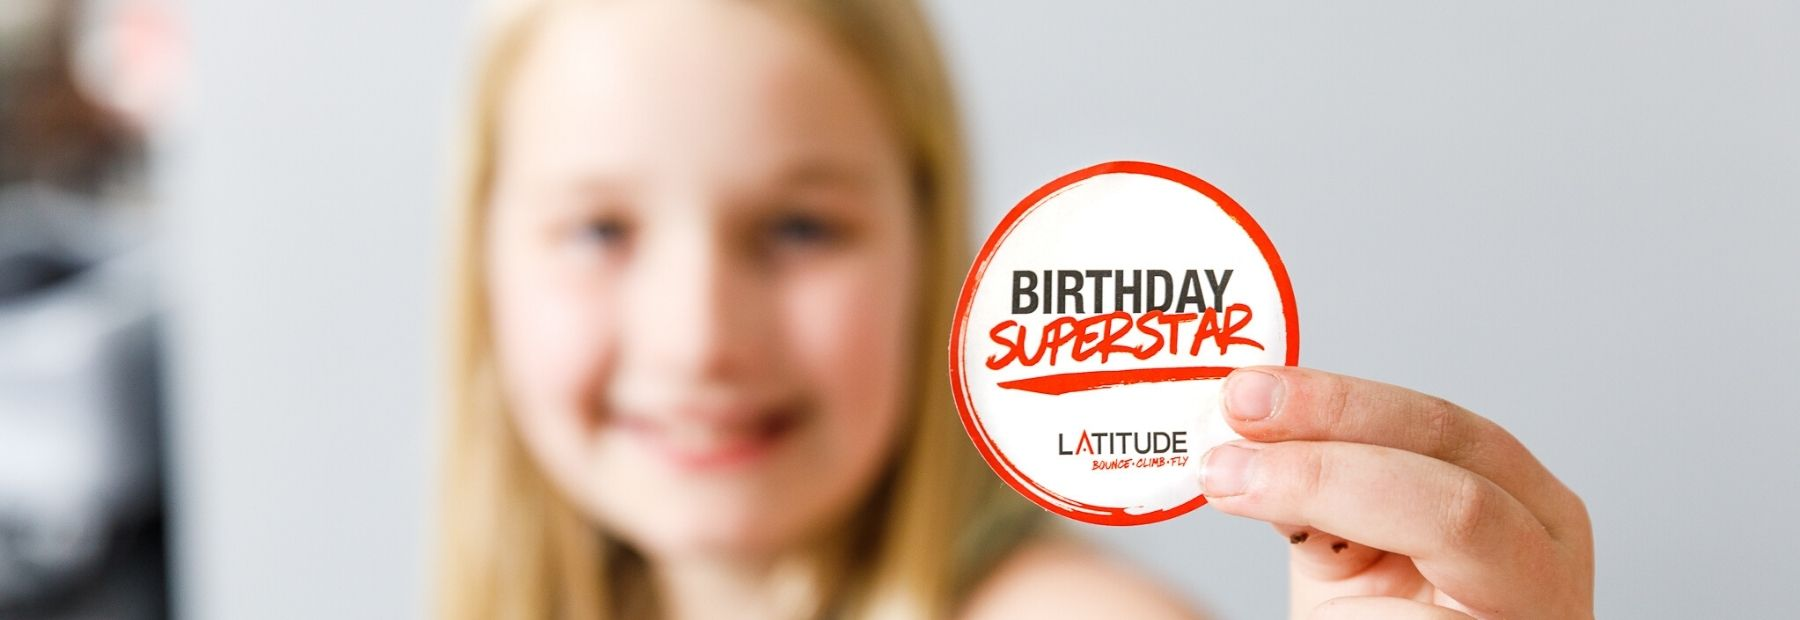 Celebrate your party at Latitude!